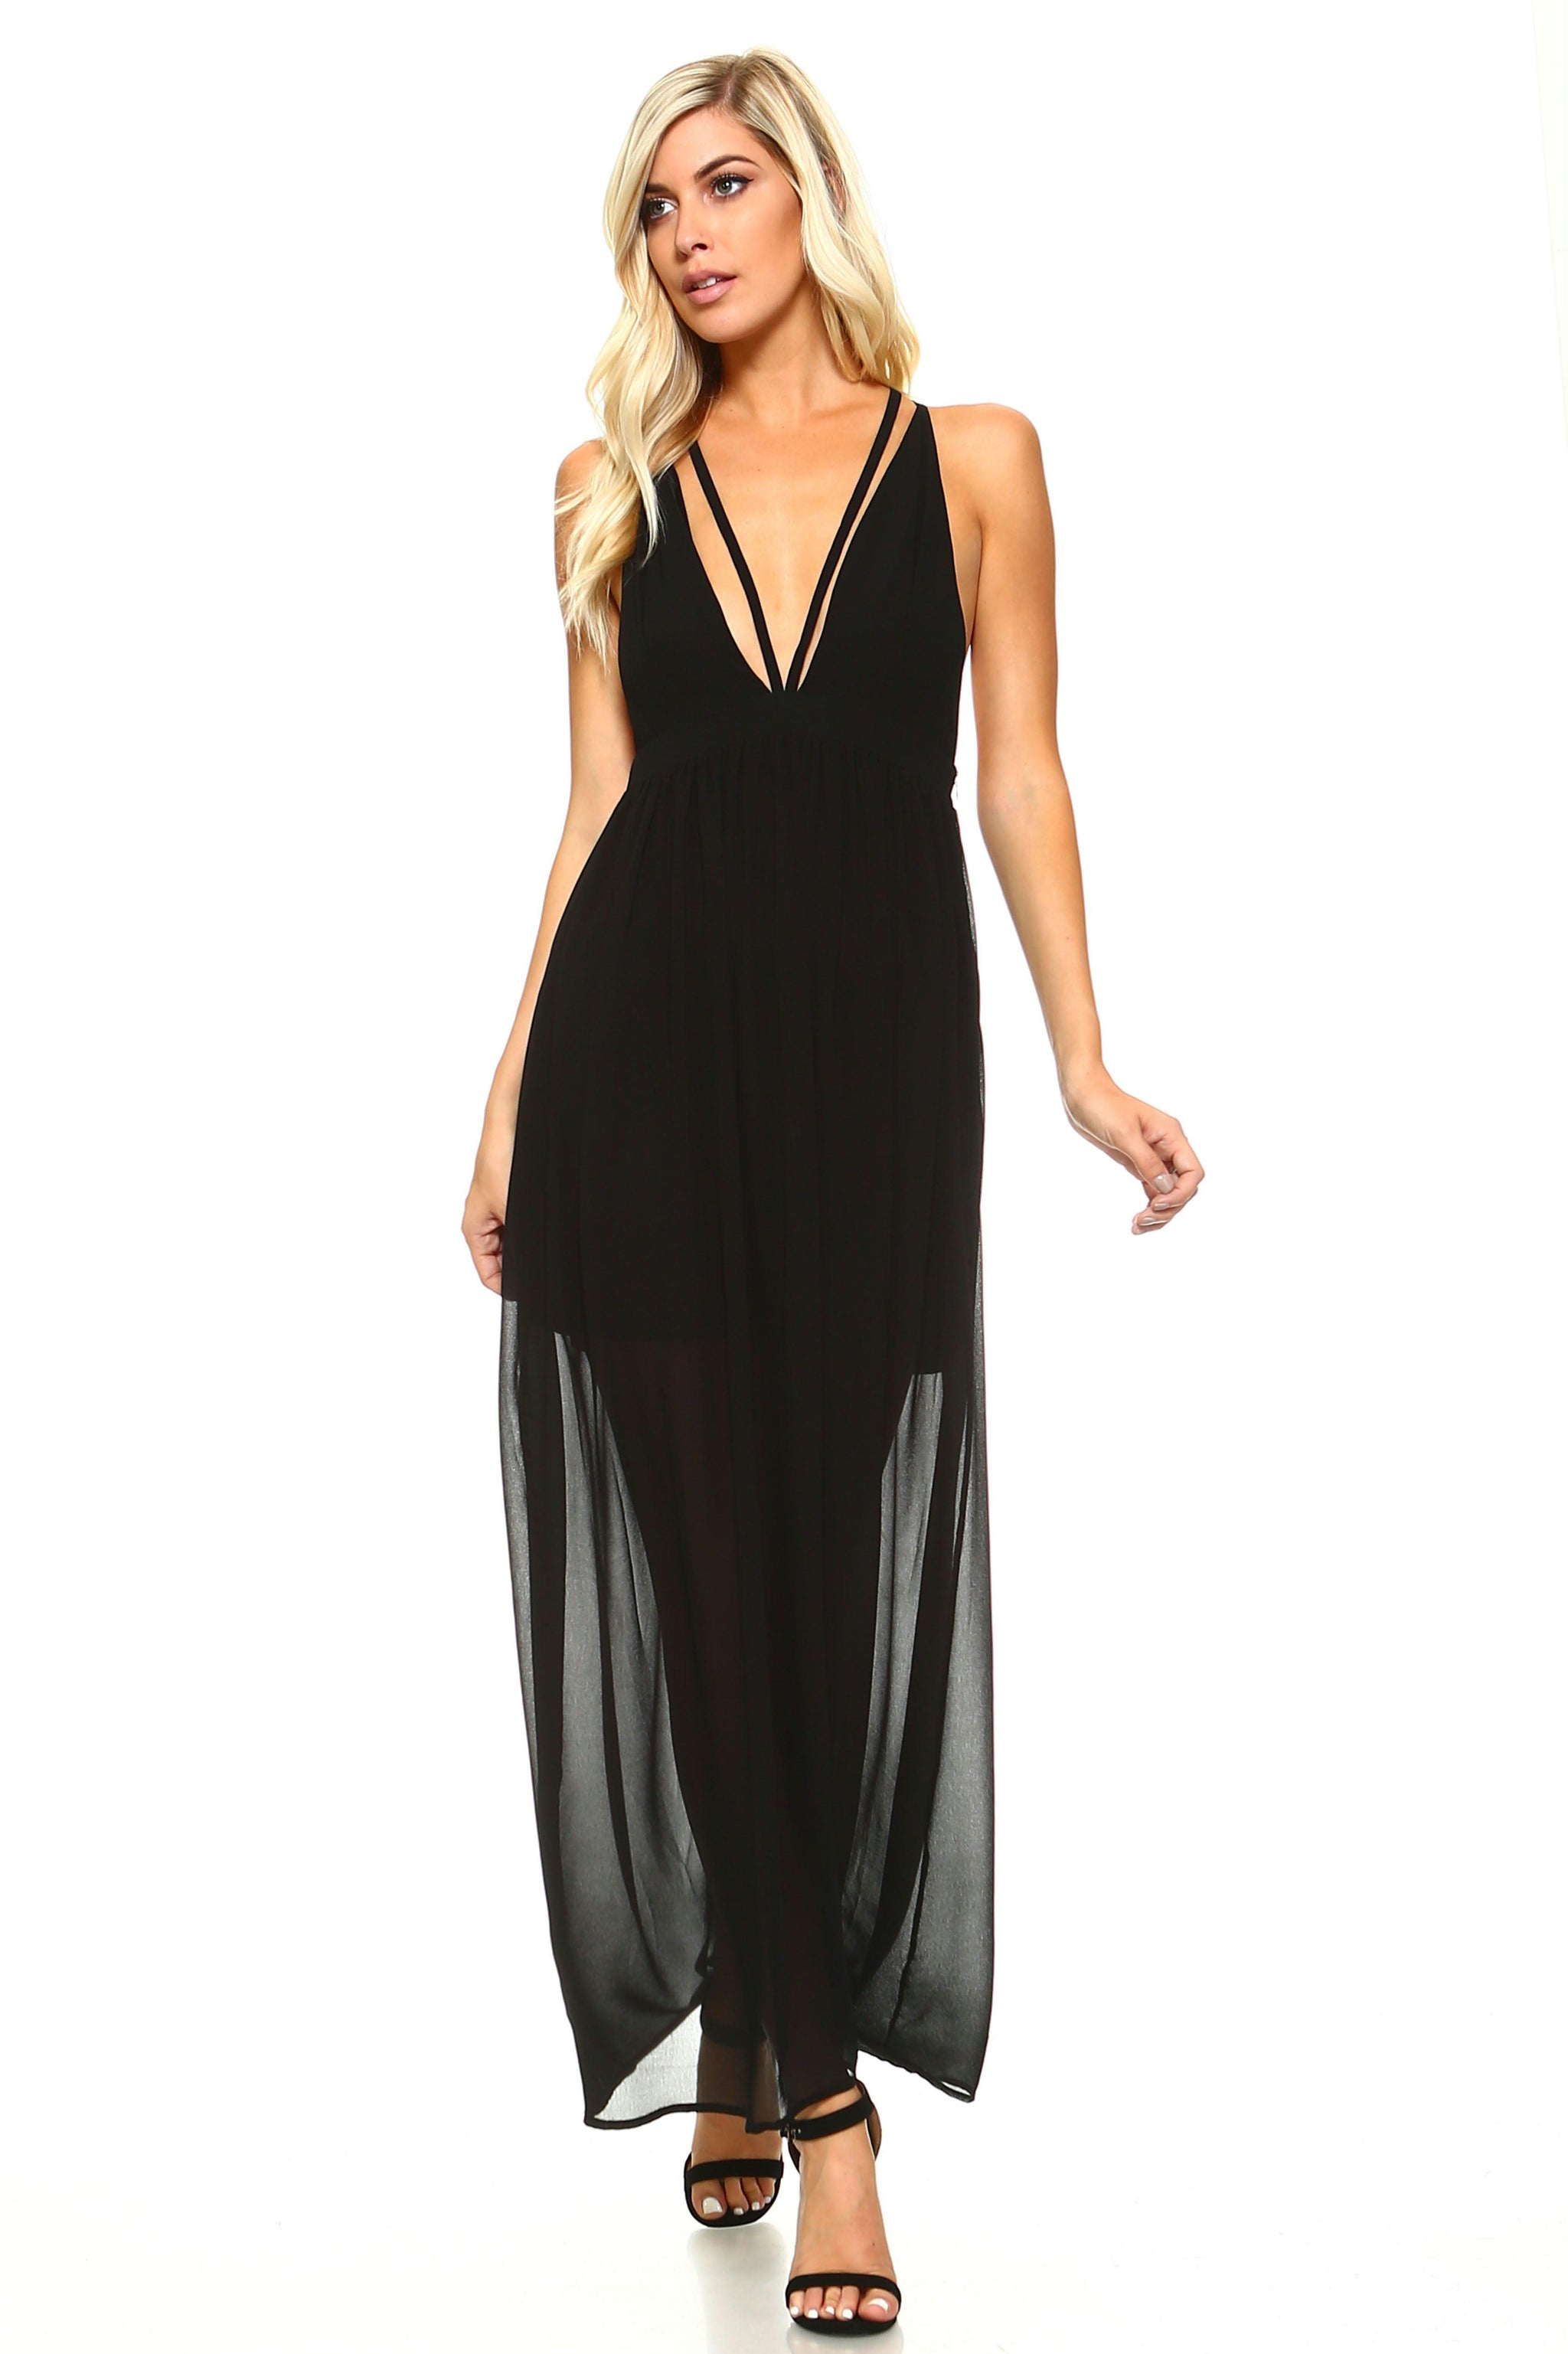 d34434691f2 Women s Black Sheer Maxi Dress with Deep V-Neck - Brand New Threads